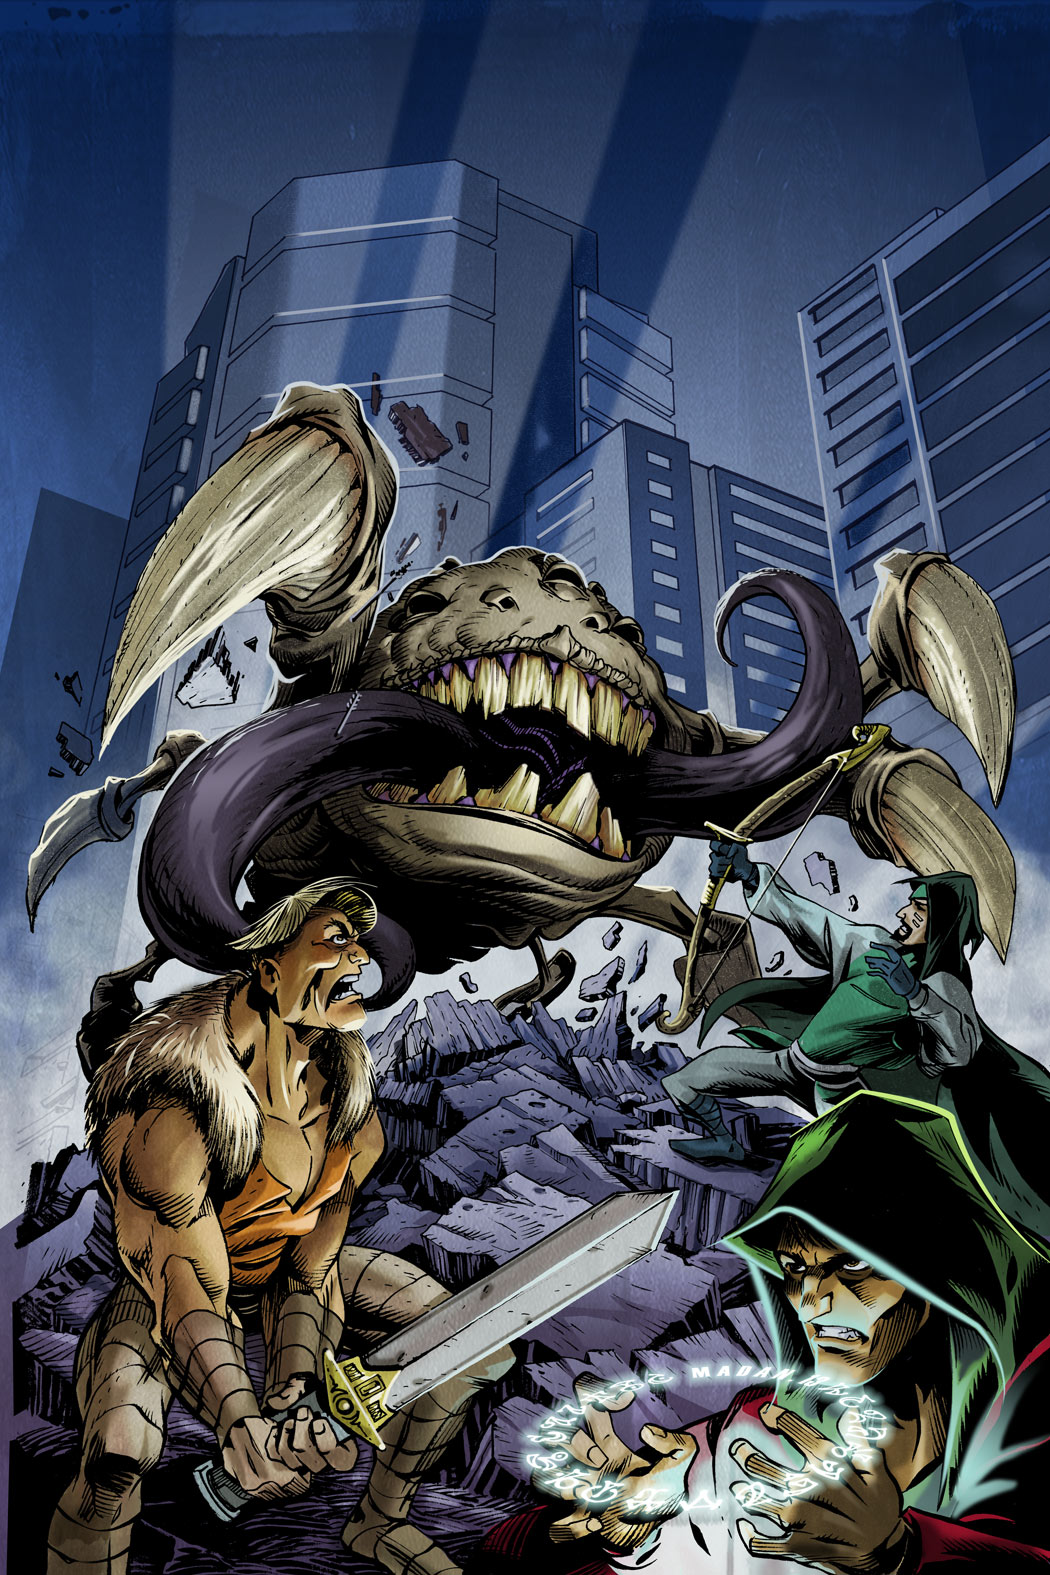 Cover_COLOR_LO.jpg